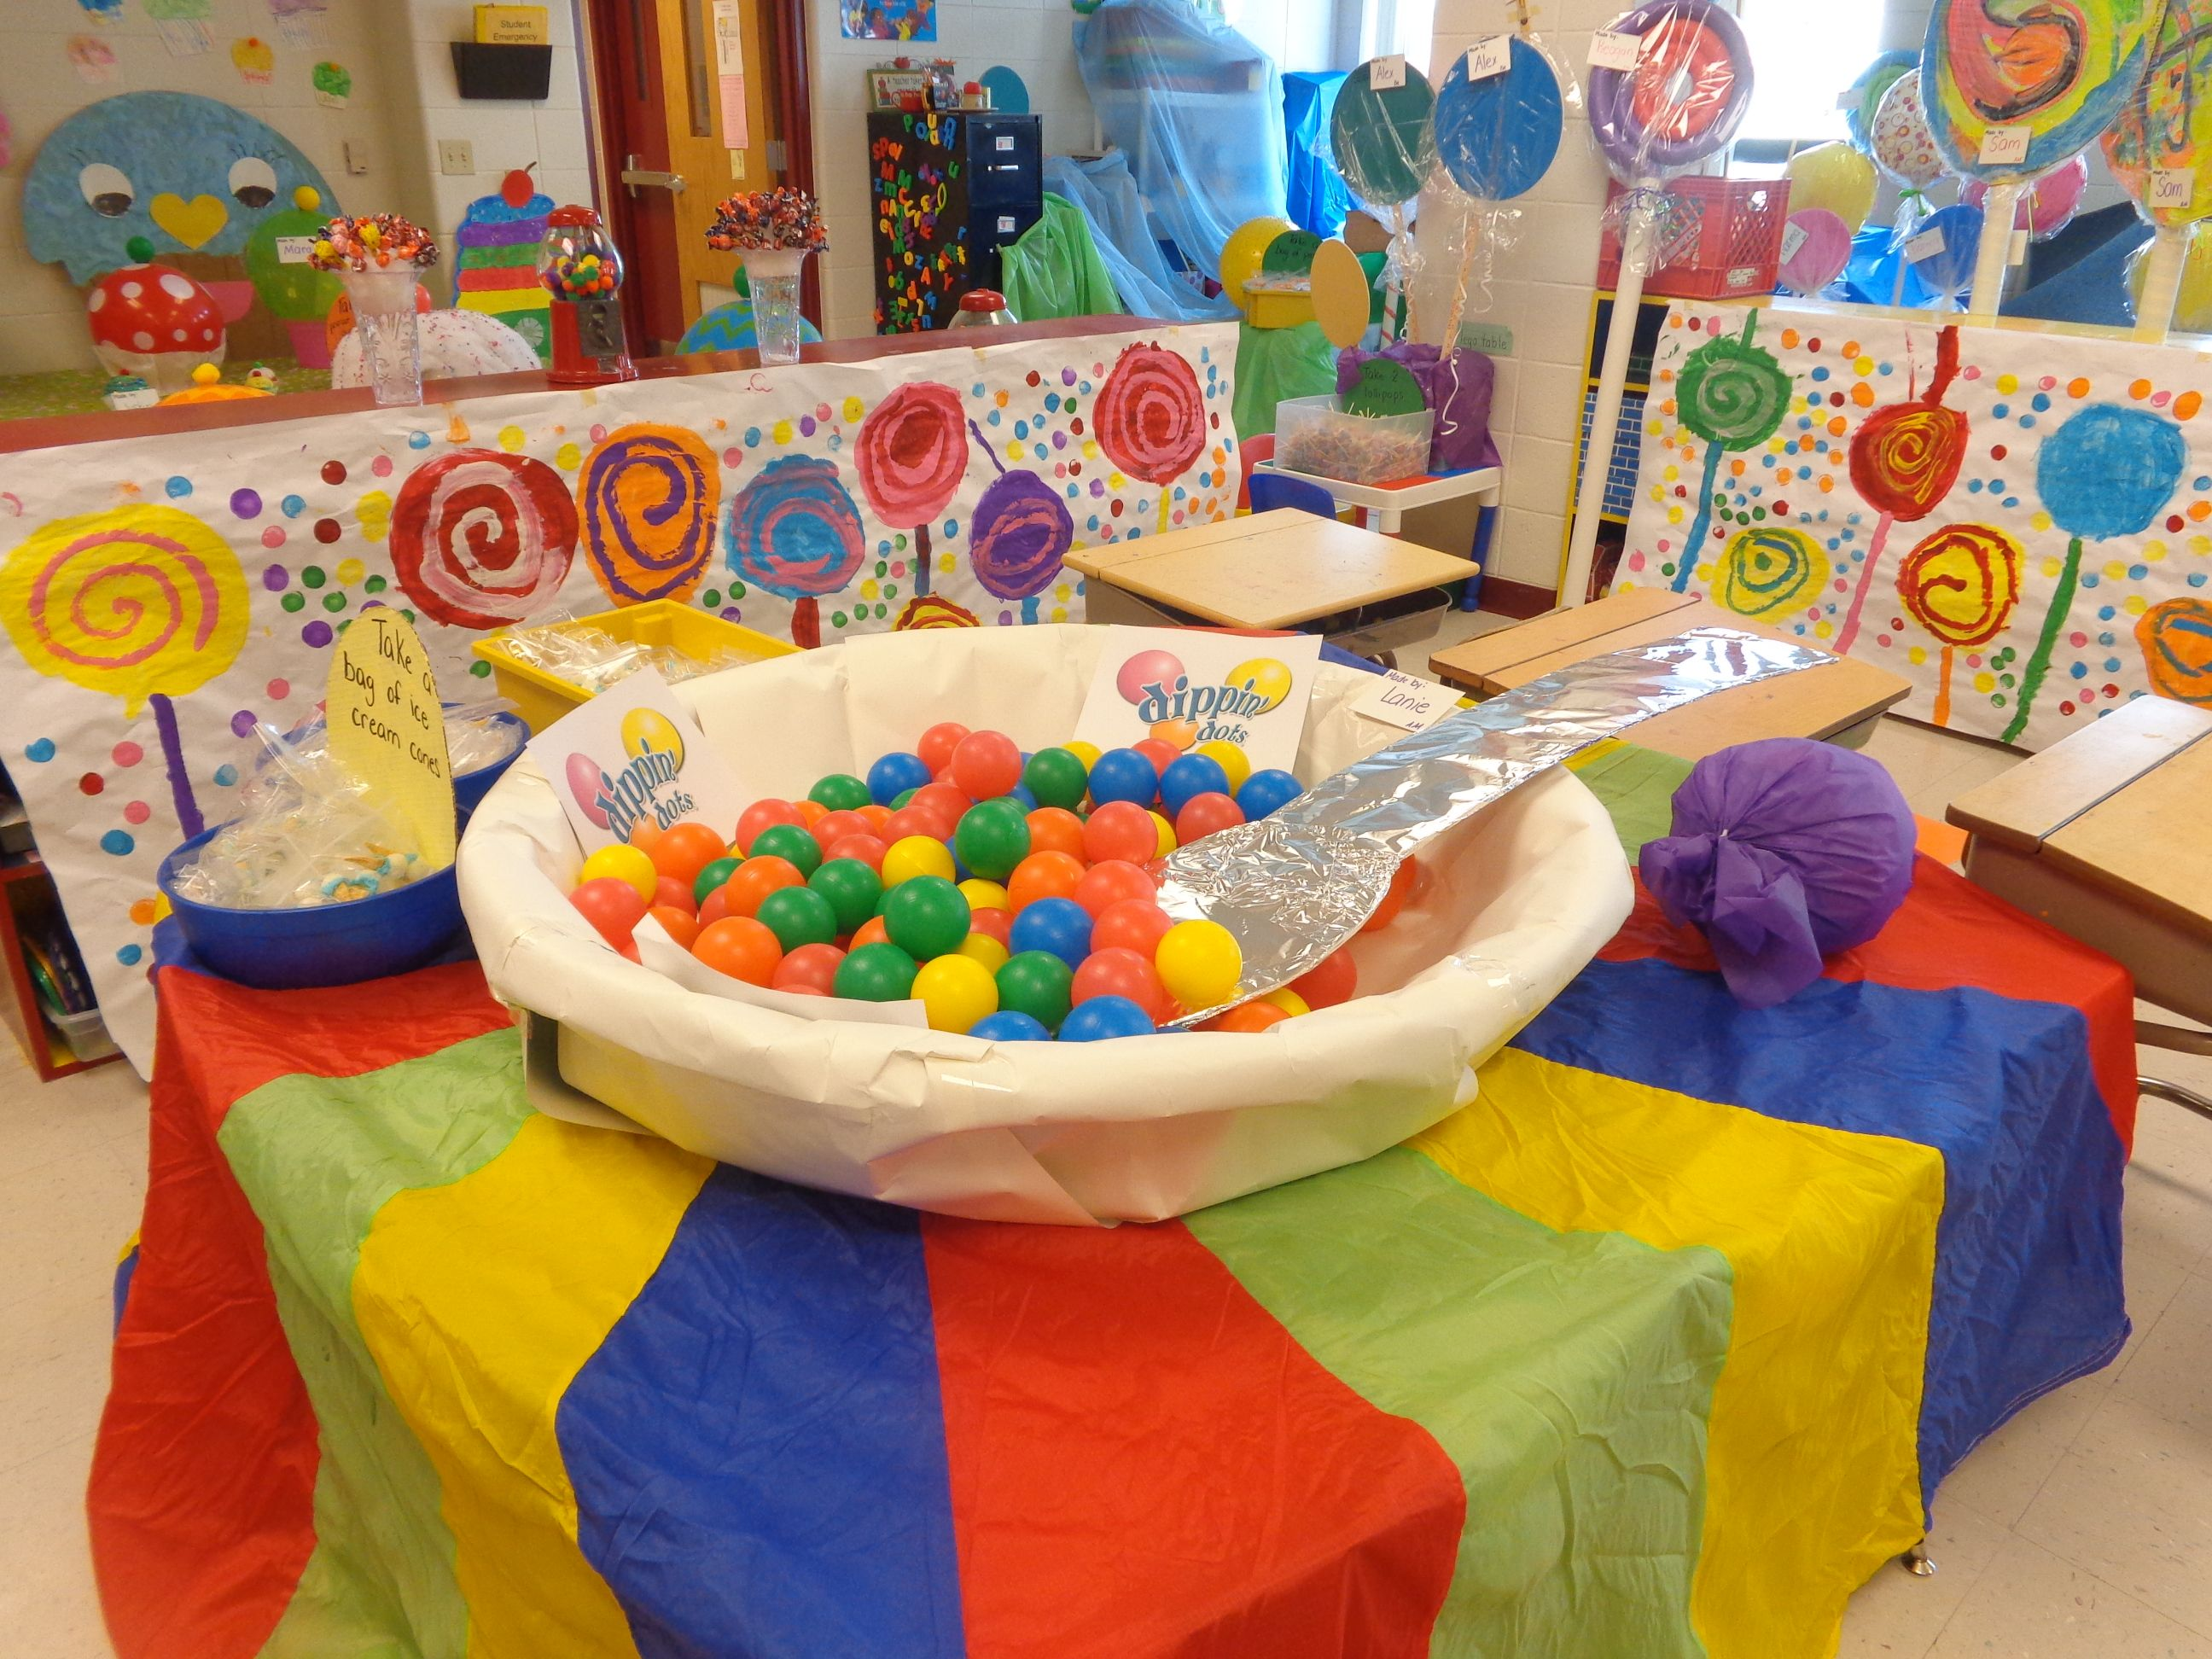 Life Sized Candyland Game Bowl Of Ice Cream And Spoon